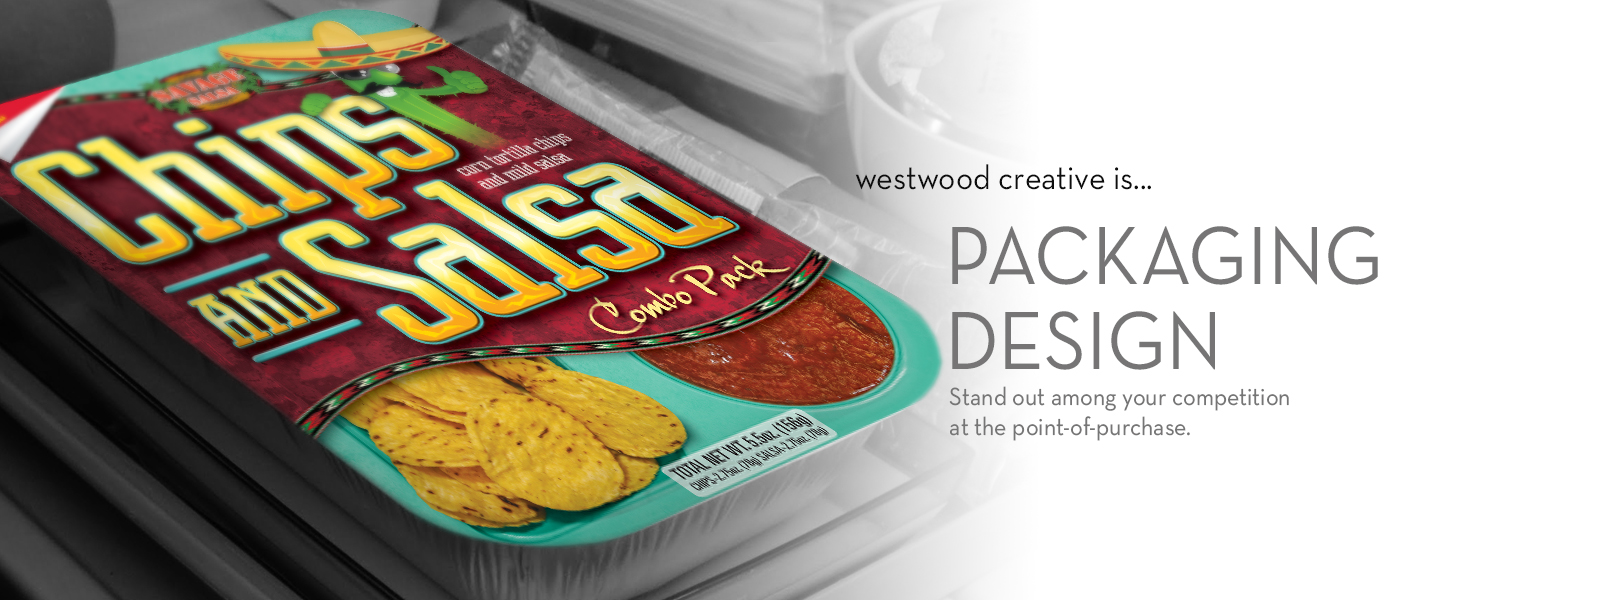 Westwood Creative Packaging Design Services